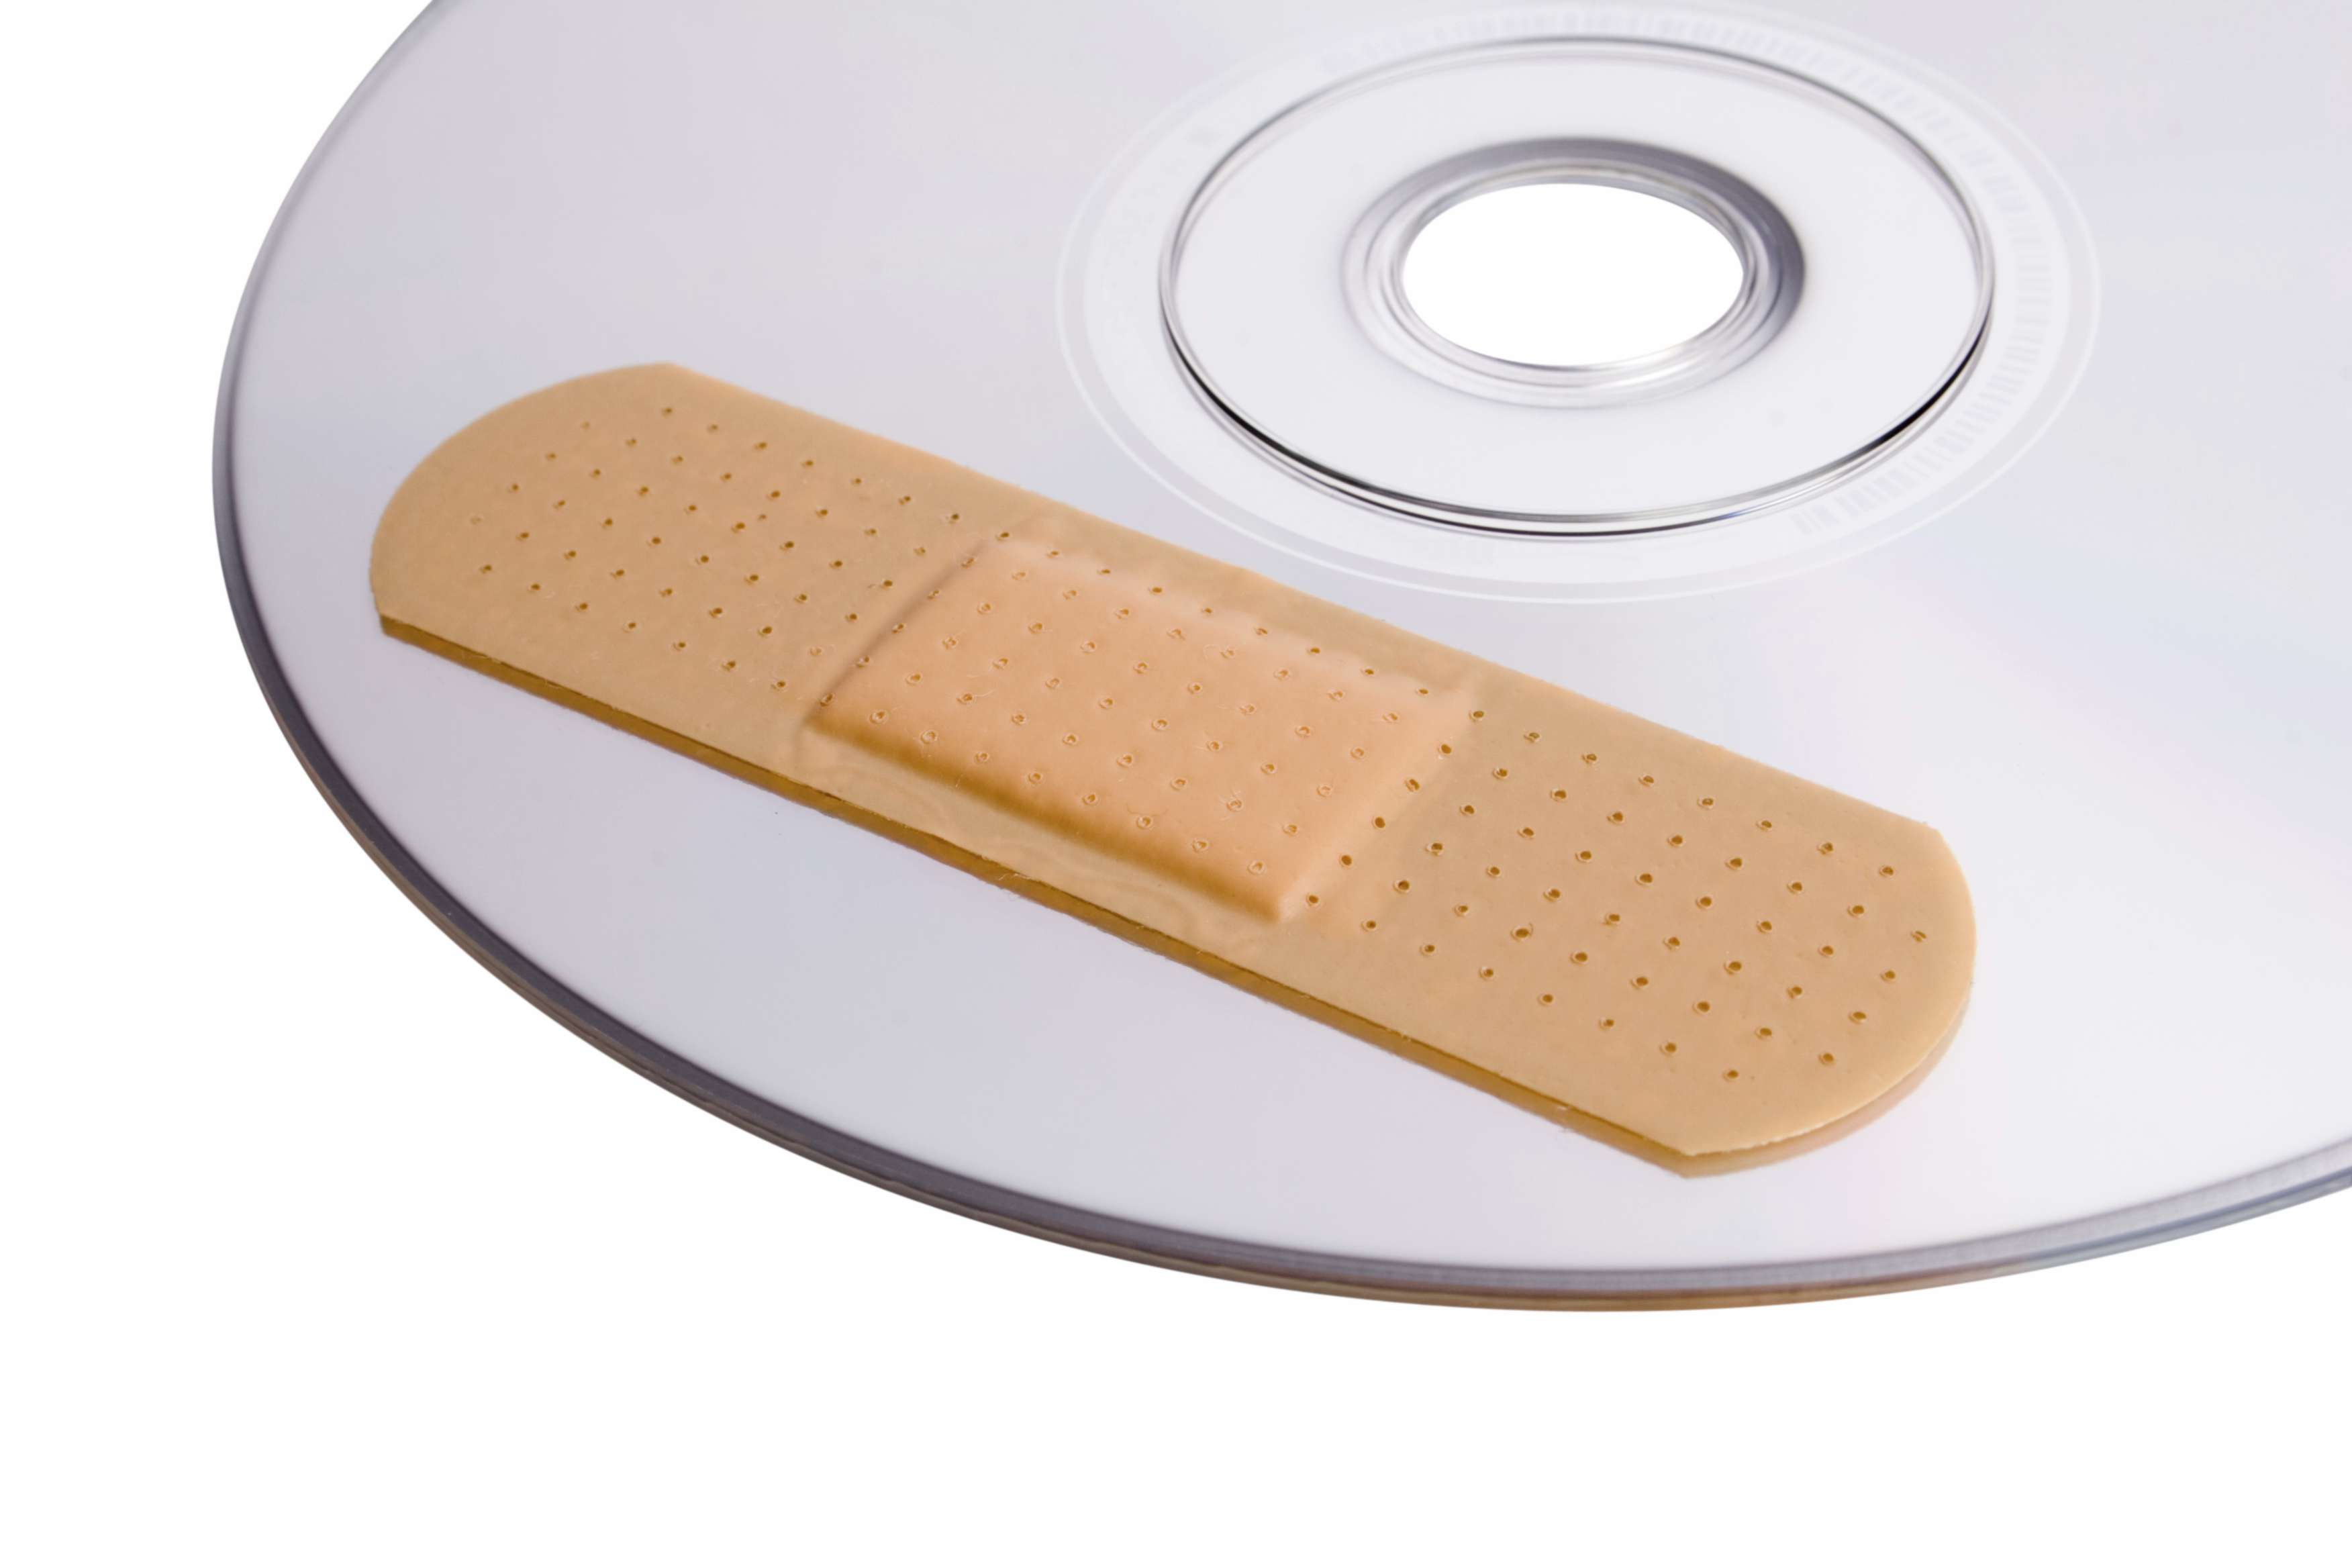 Photo of a bandage on a CD or DVD disc